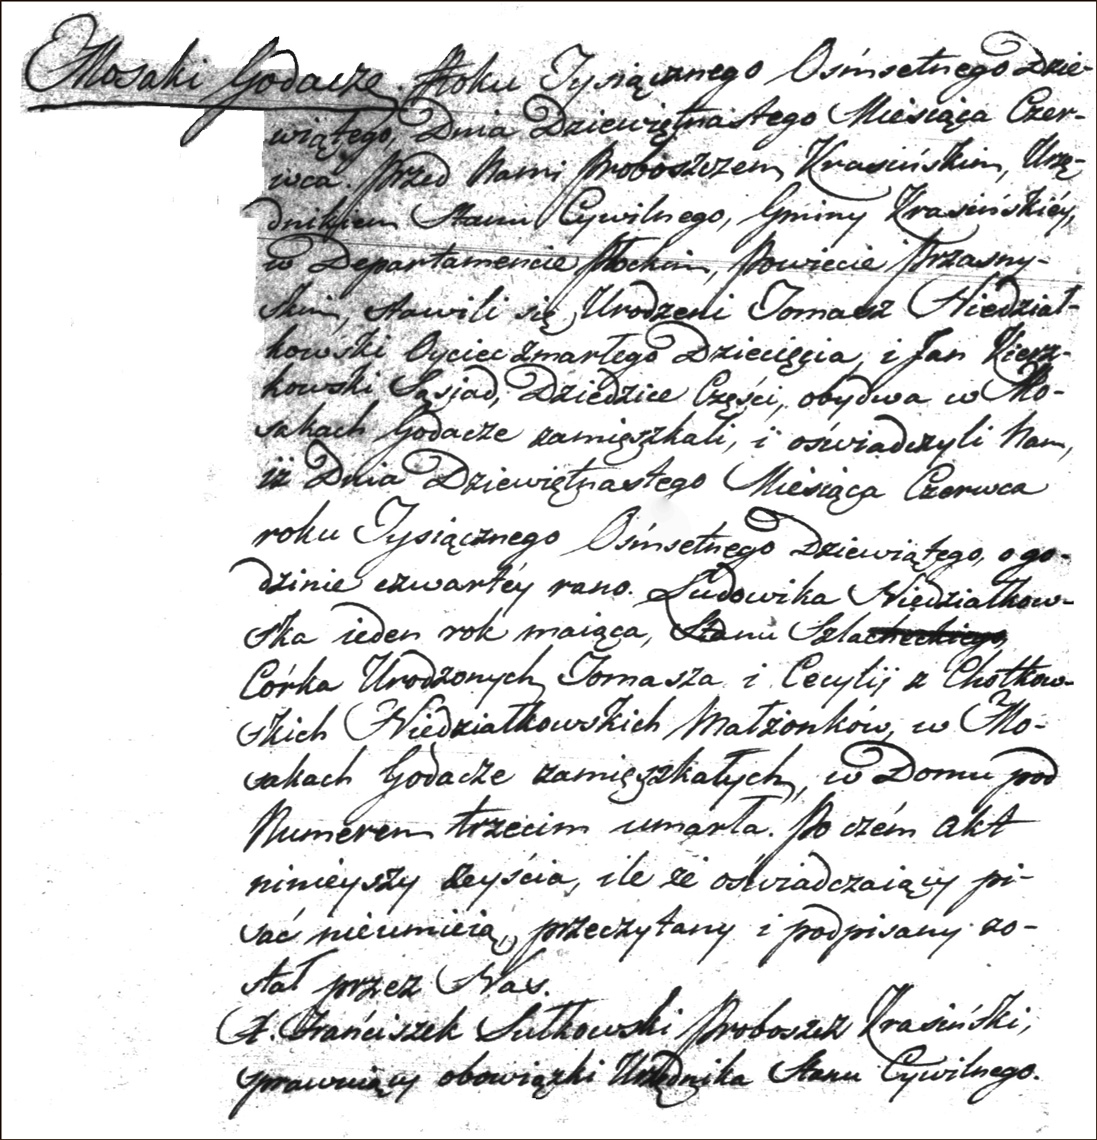 The Death and Burial Record of Ludwika Niedzialkowska - 1809